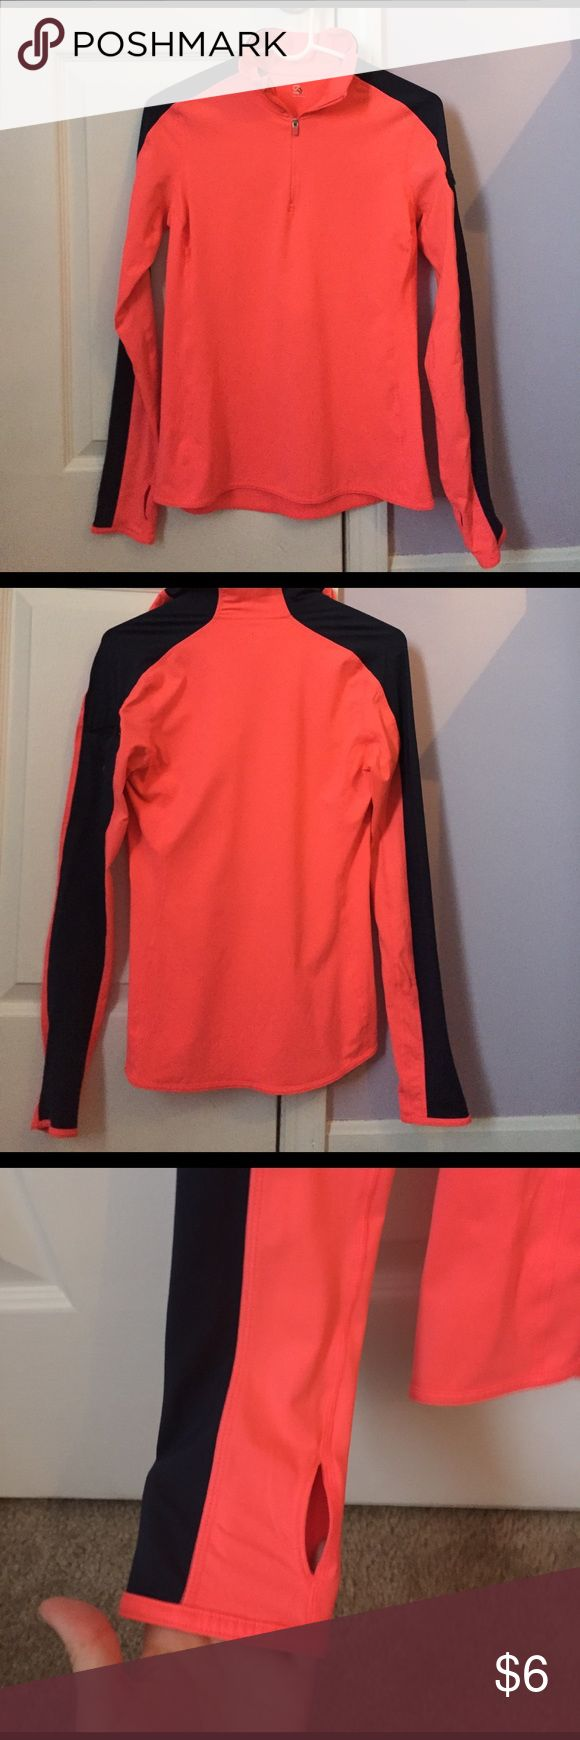 Gap Fit Zip Up Neon pink with navy stripes on the arms zip up, size Small. Thumb holes on the sleeves with a pocket on one arm to hold keys/money/etc. small stain on back from marker marking from outlet store. Material is spandex and polyester. GAP Tops